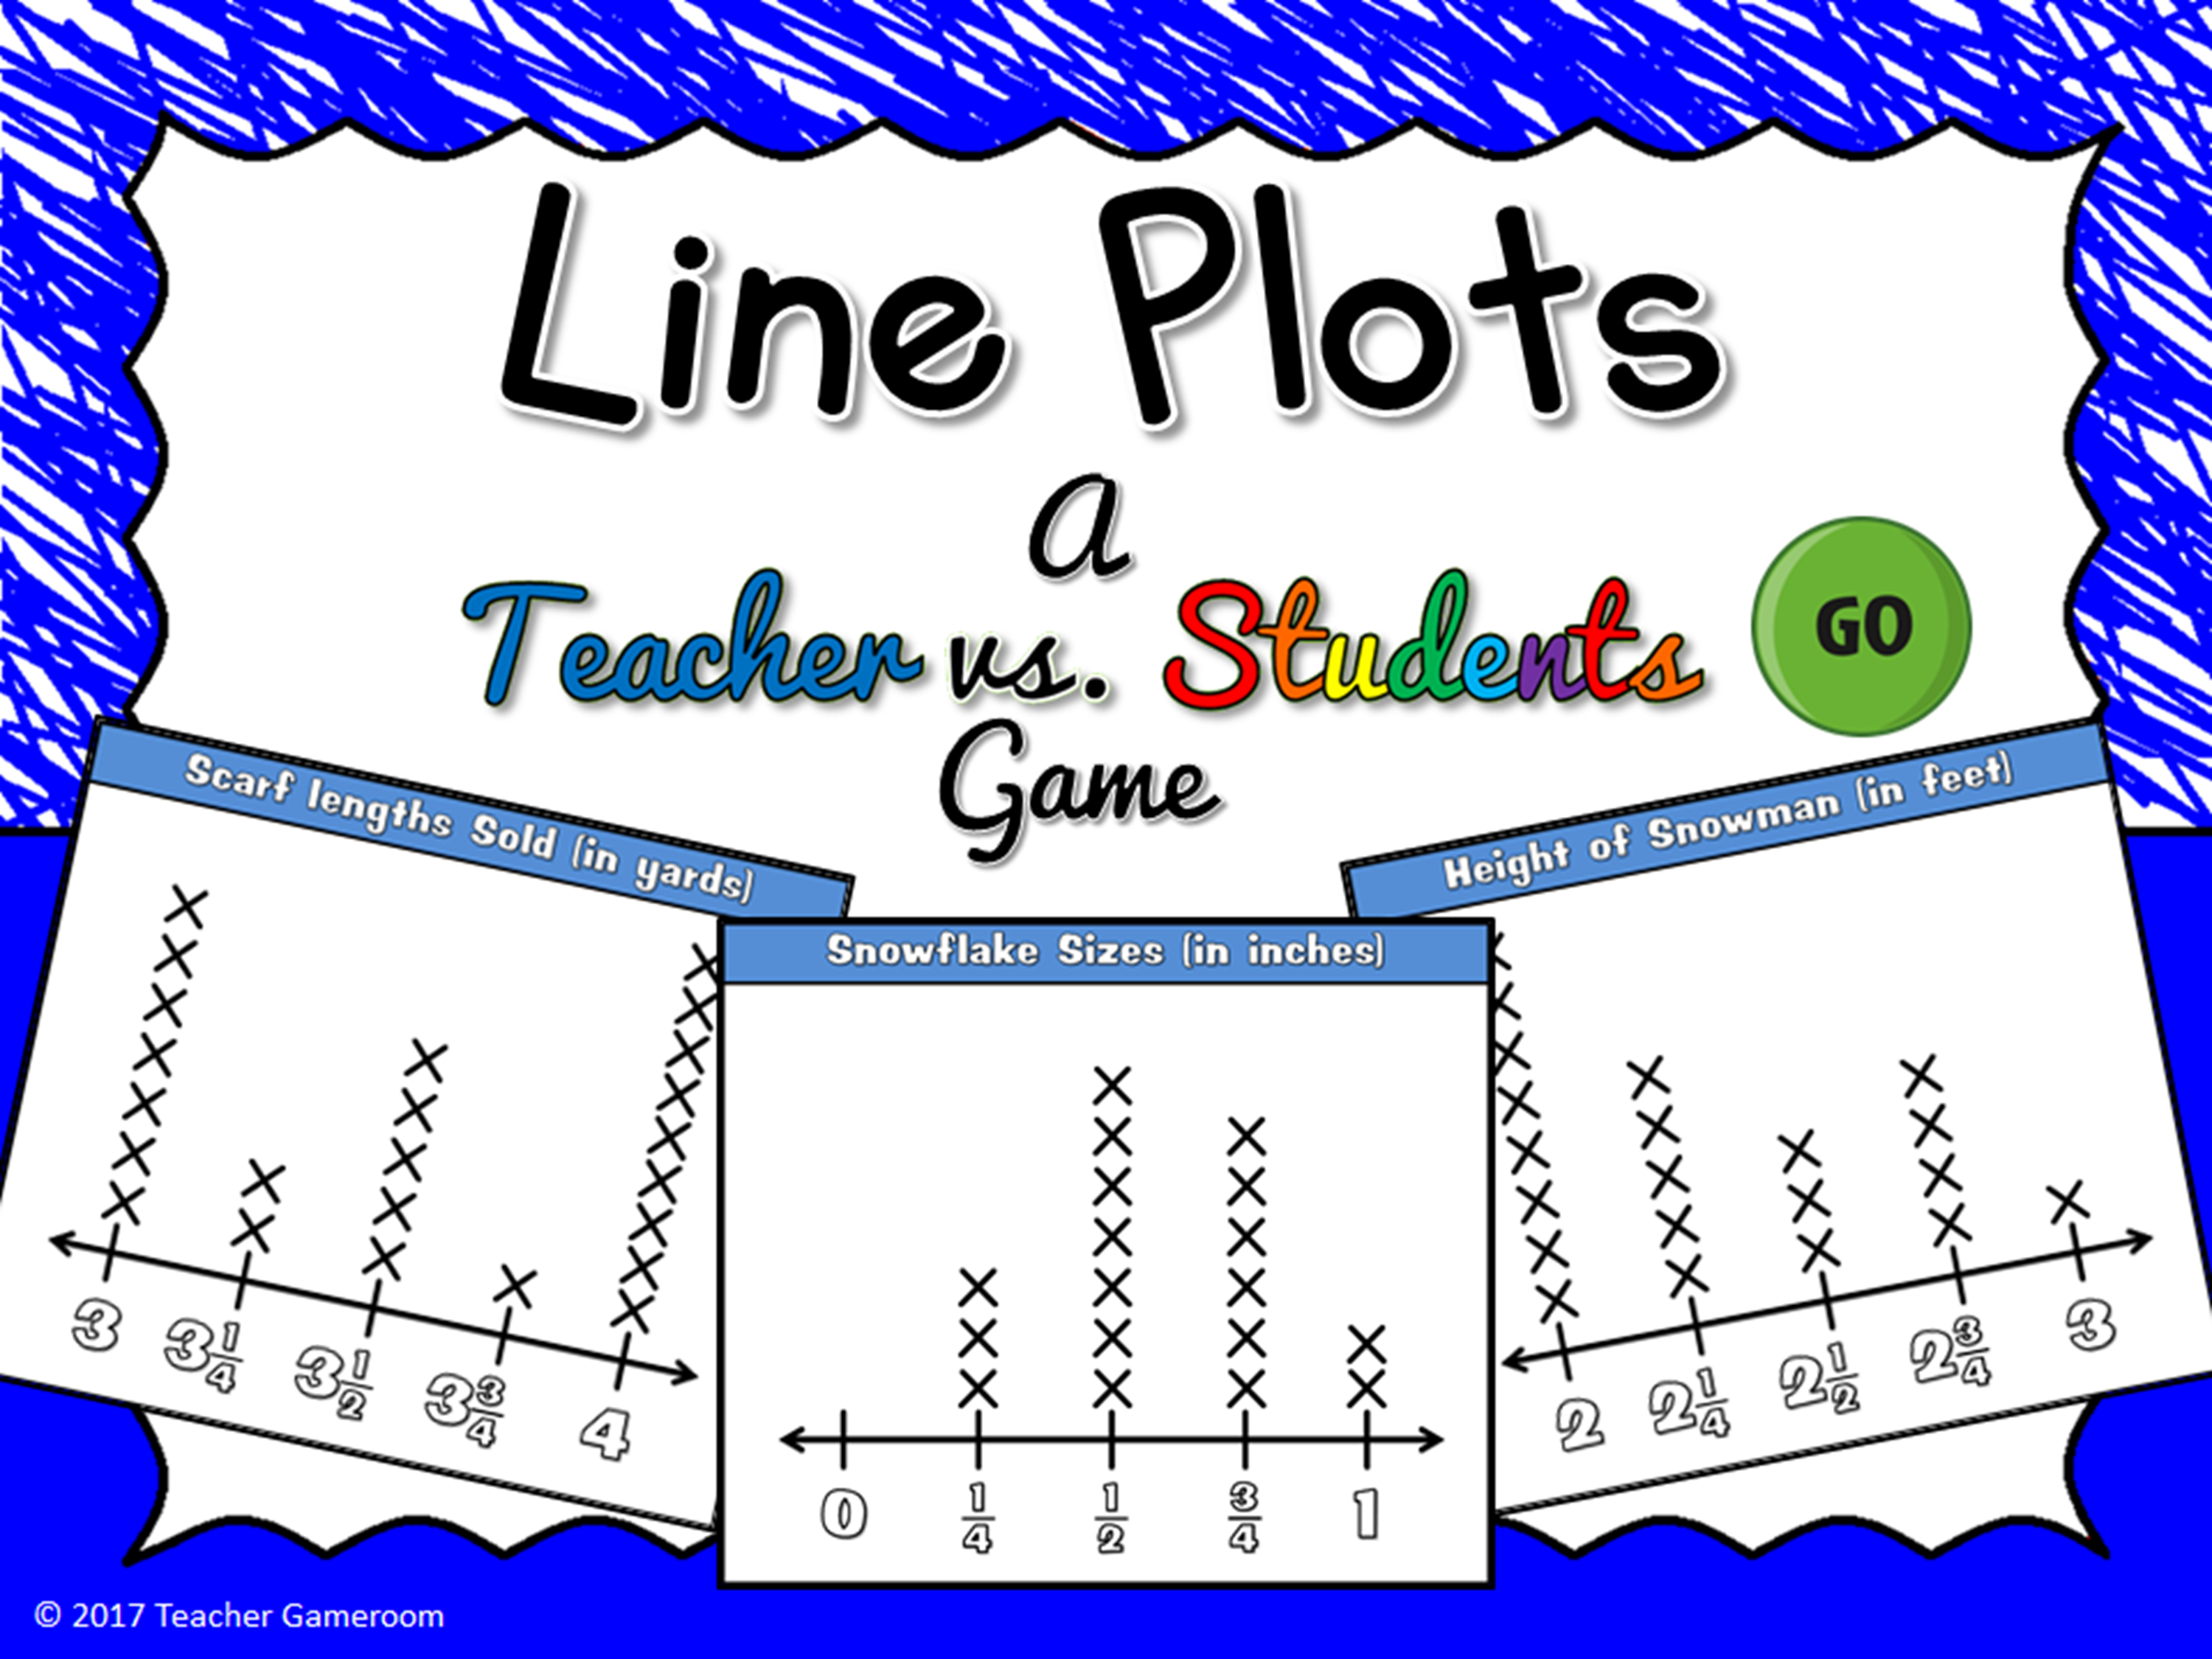 Line Plot Teacher bvs Student Game